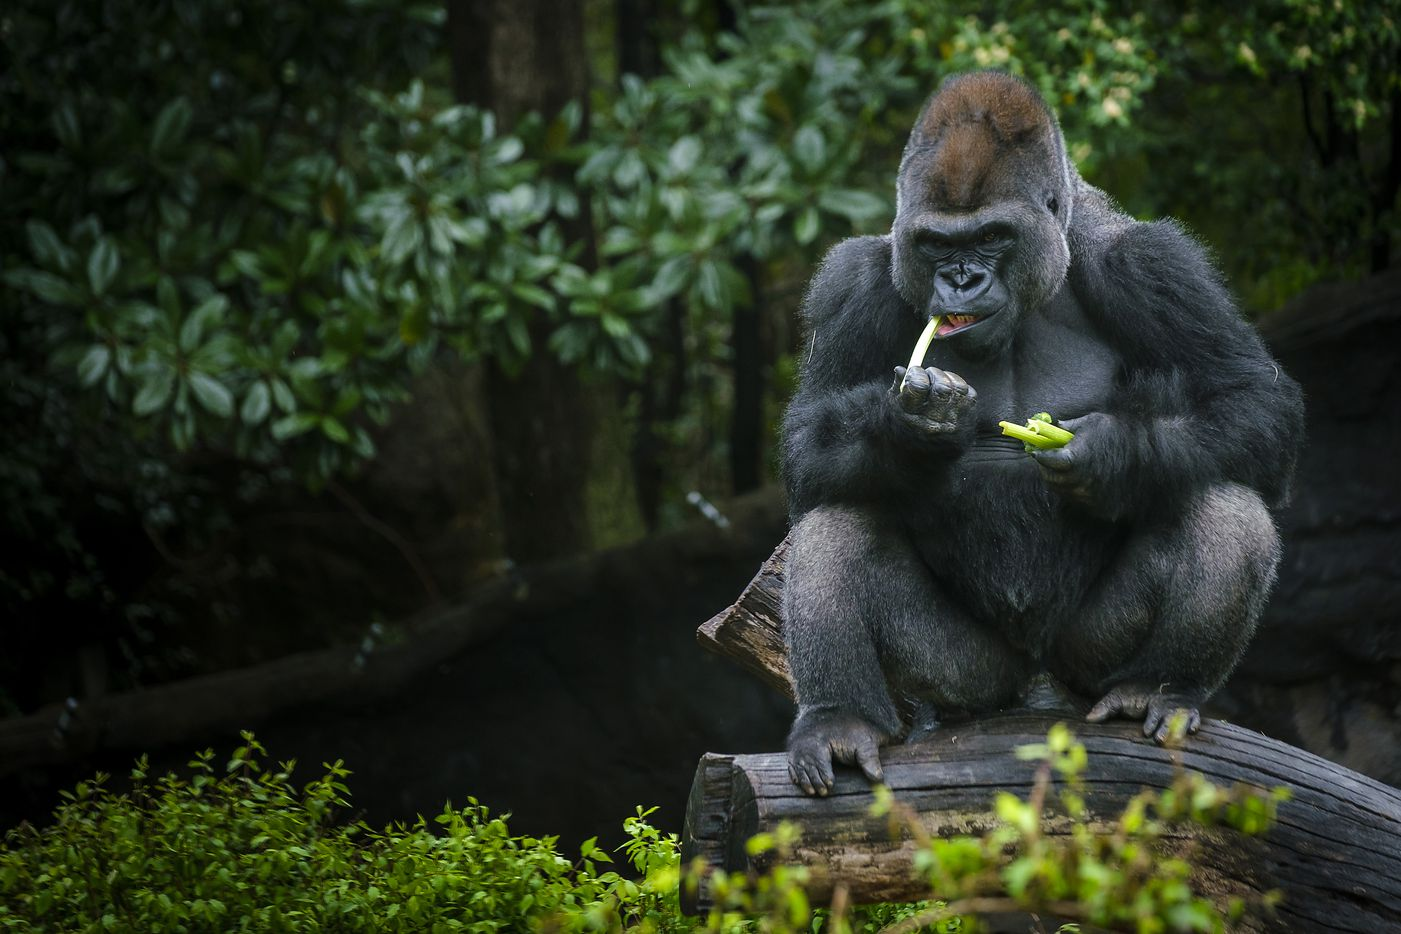 A a gorilla munches on celery inside the Gorilla Research Station habitat at the Dallas Zoo.